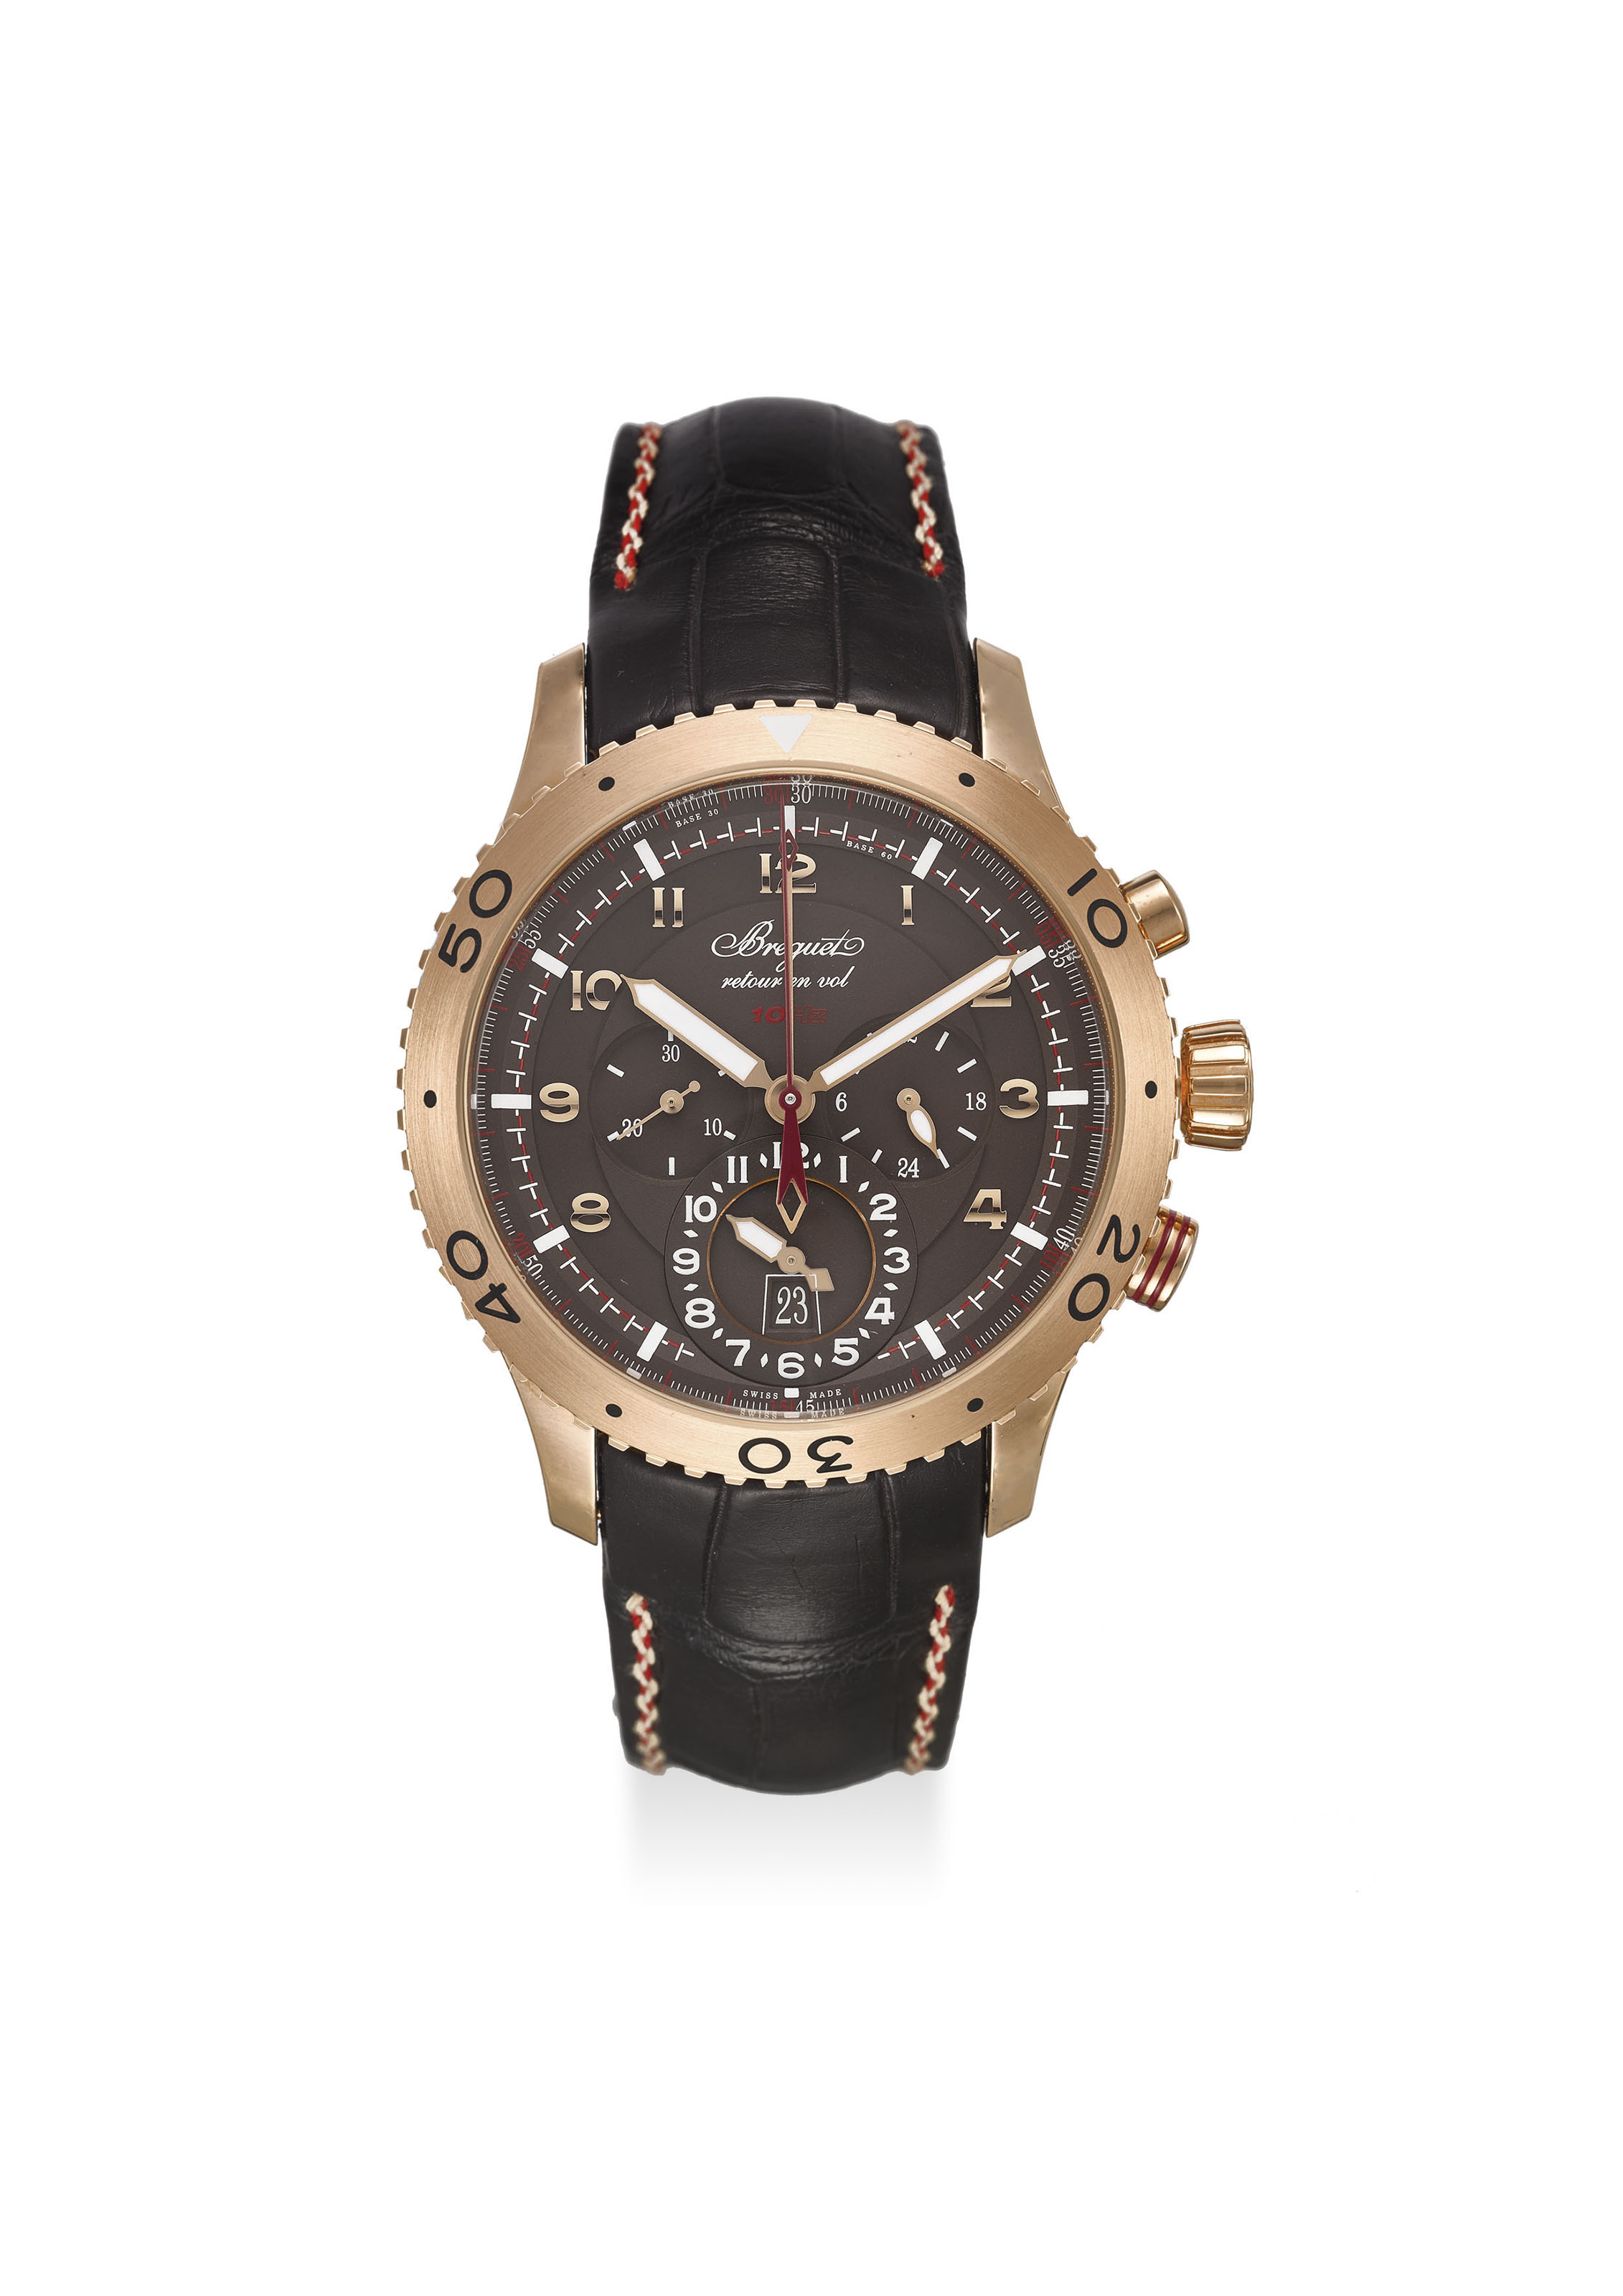 BREGUET. AN EXTREMELY FINE 18K ROSE GOLD CHRONOGRAPH DUAL TIME AUTOMATIC WRISTWATCH WITH DATE, ORIGINAL CERTIFICATE AND BOX